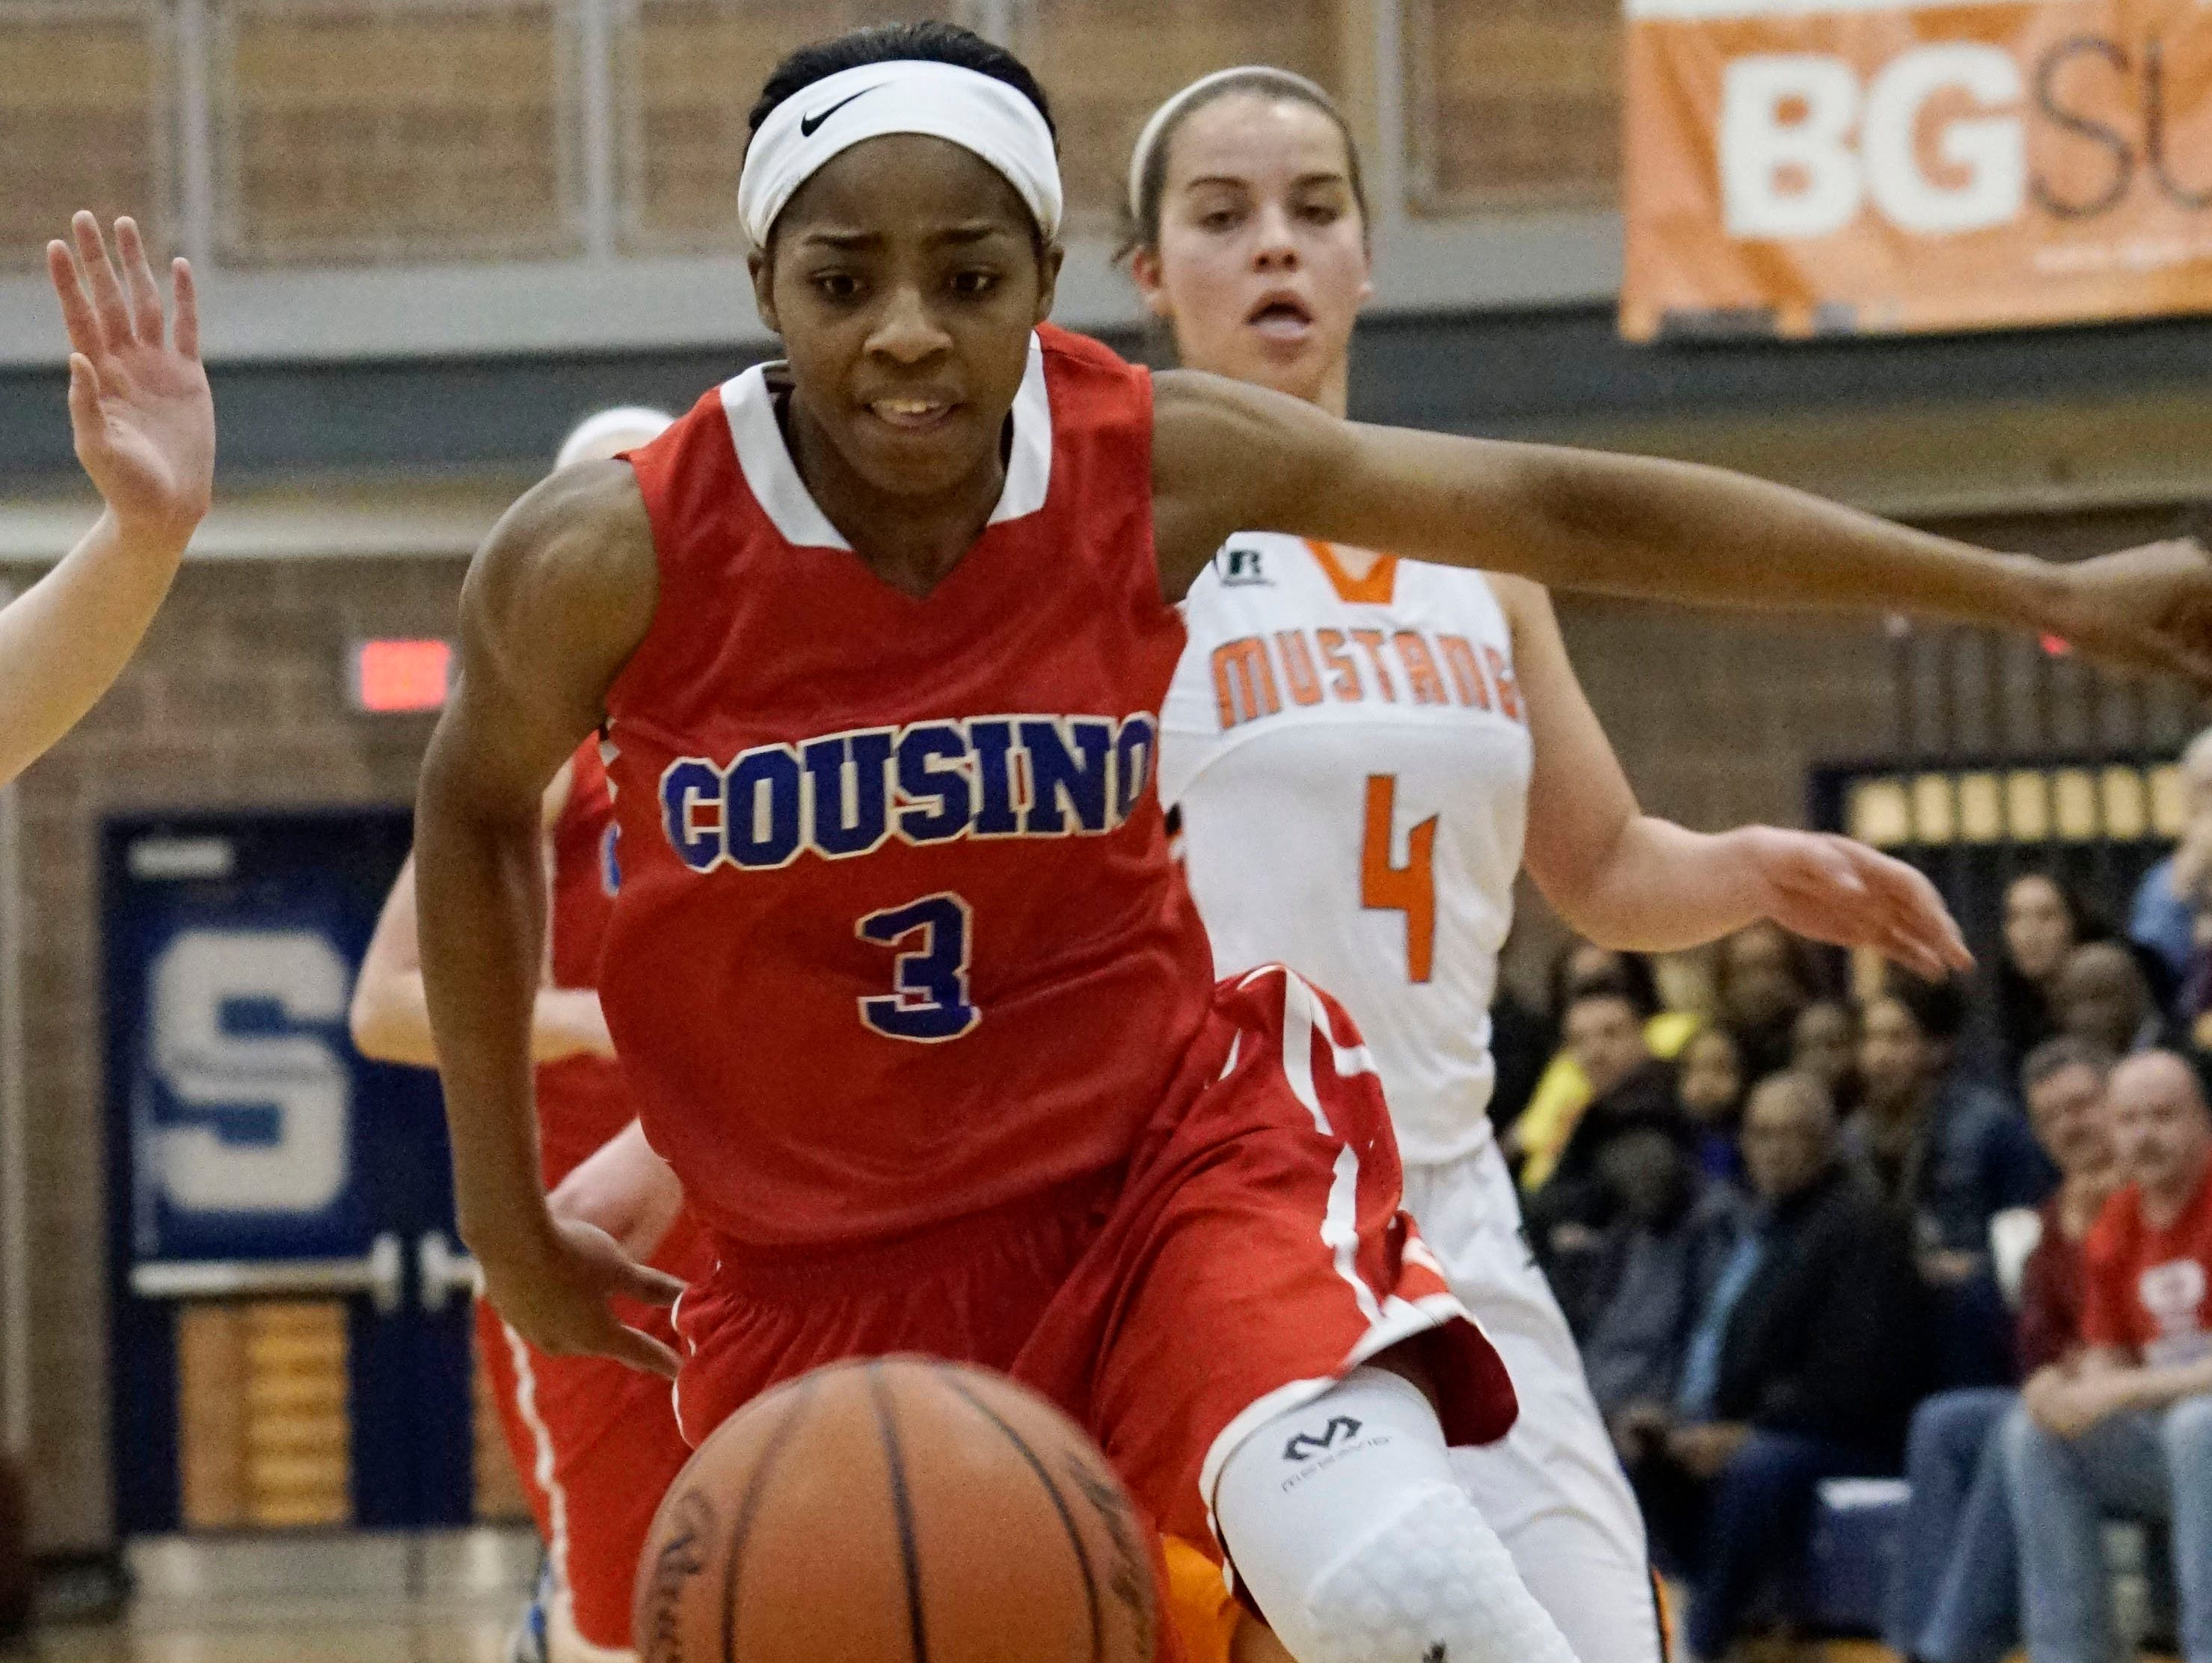 Warren Cousino's Kierra Fletcher (3/G) chases down a loose ball during the Girls' Basketball Quarter Finals on Tuesday, Mar. 15, 2016 at Southfield High School in Southfield.